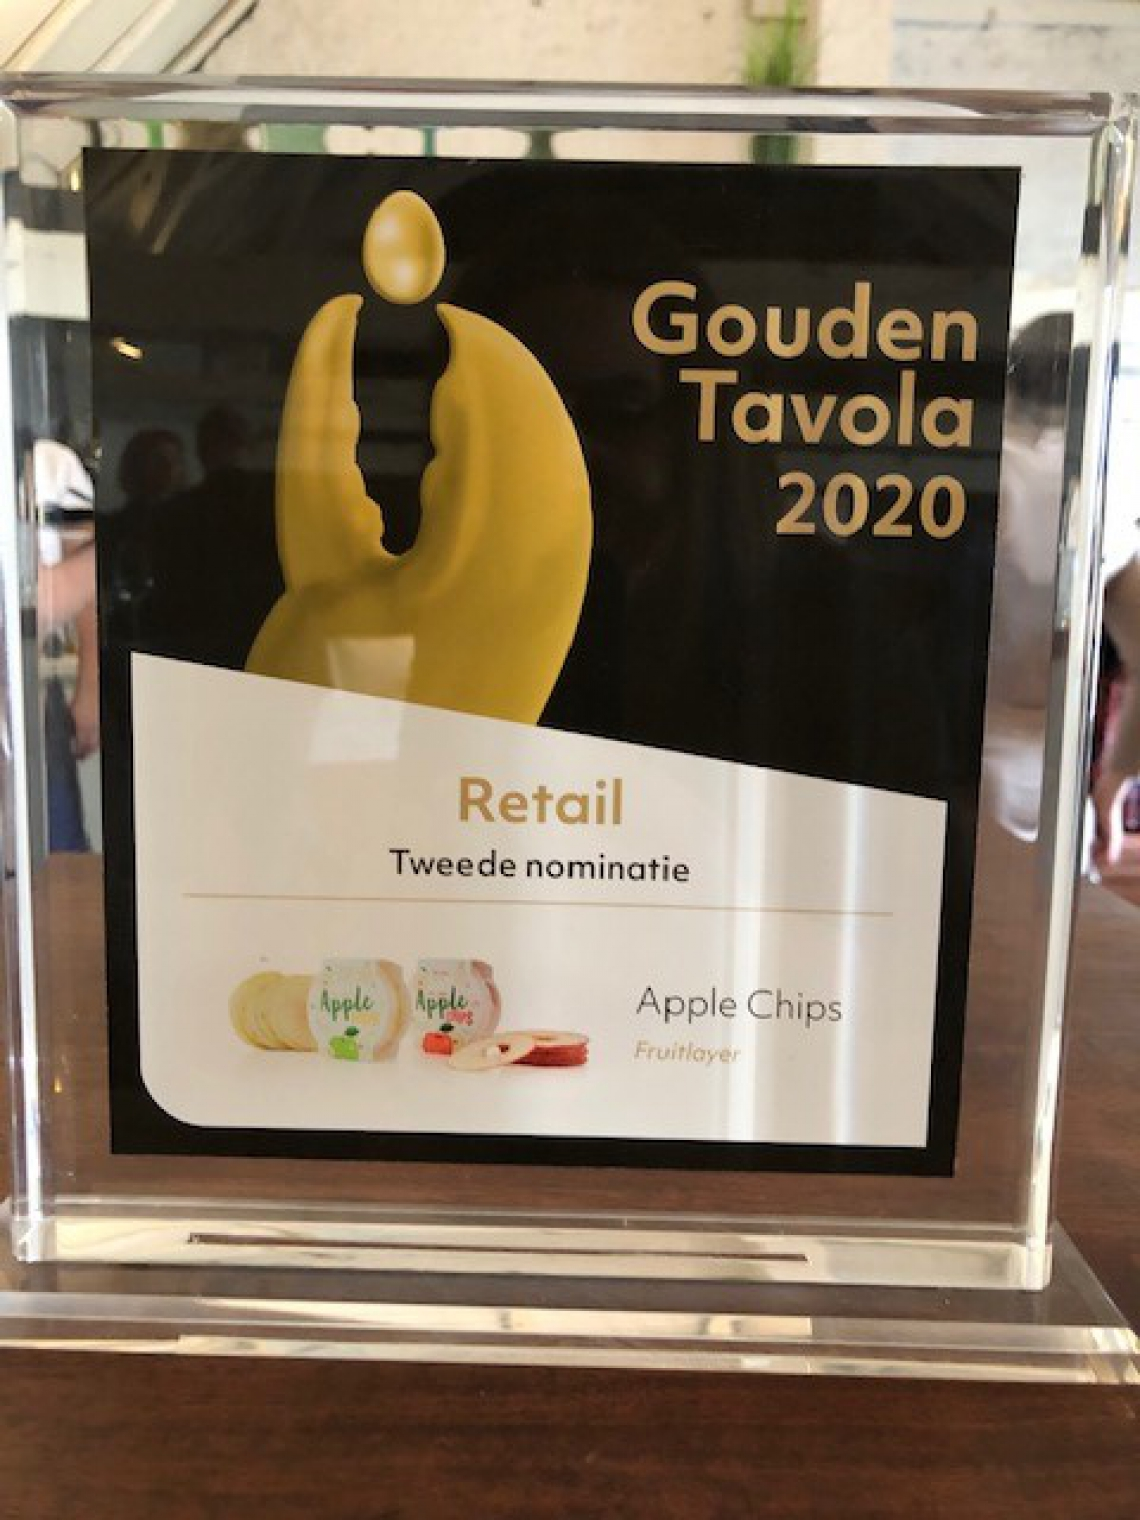 3th place for Fruit layer apple chips at Golden Tavola